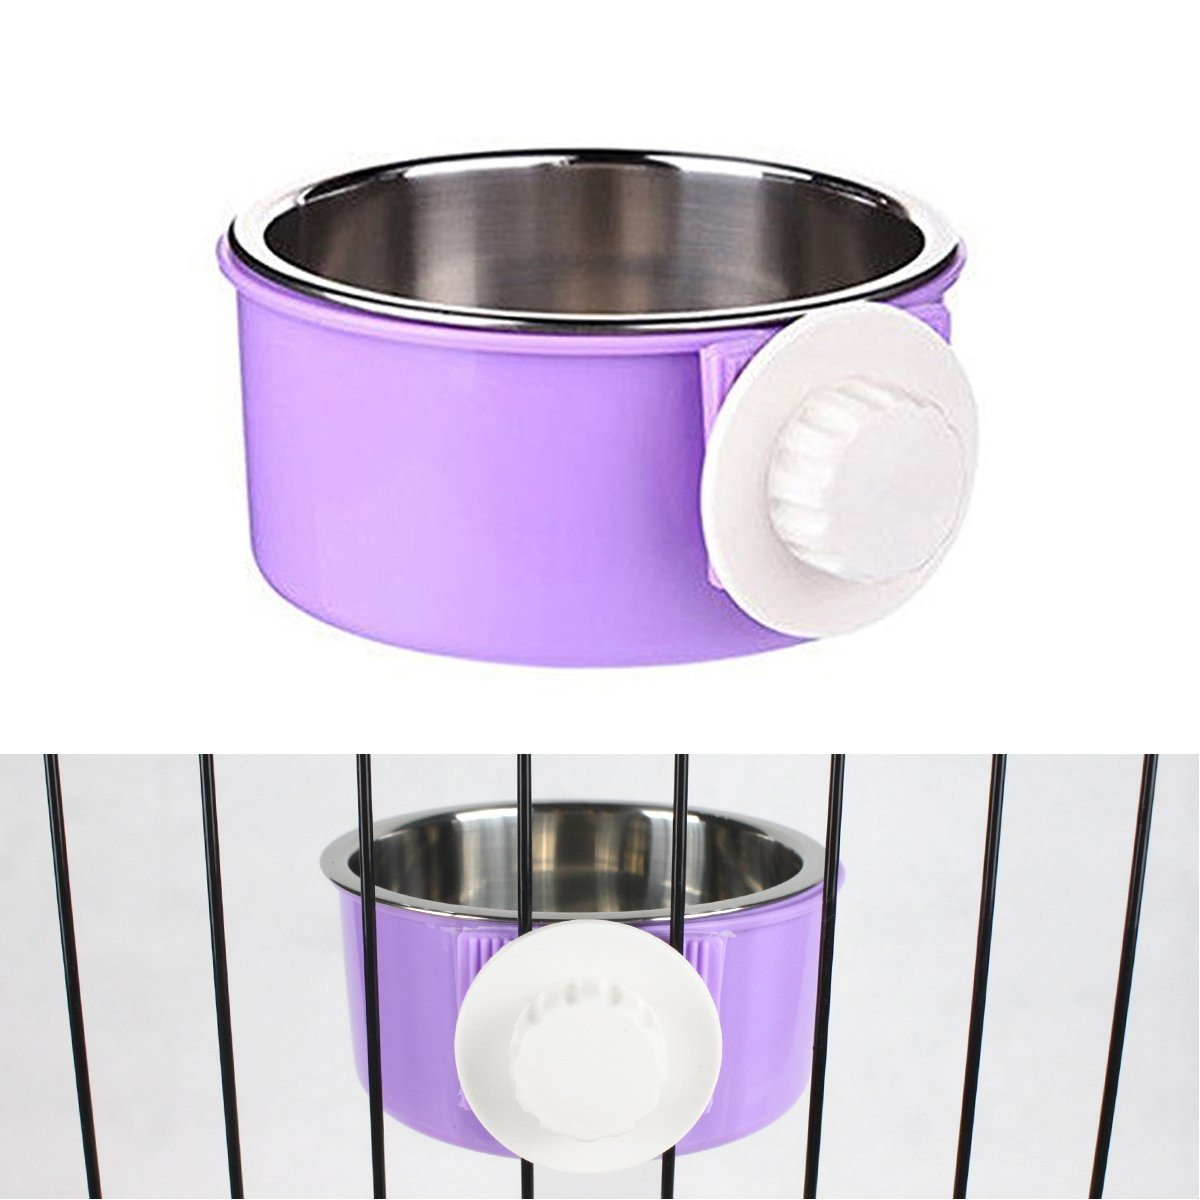 PETLESO Water Bowl for Dog Crate - Crate Water and Feed Bowl for Pet Dog Cat Bird - Purple